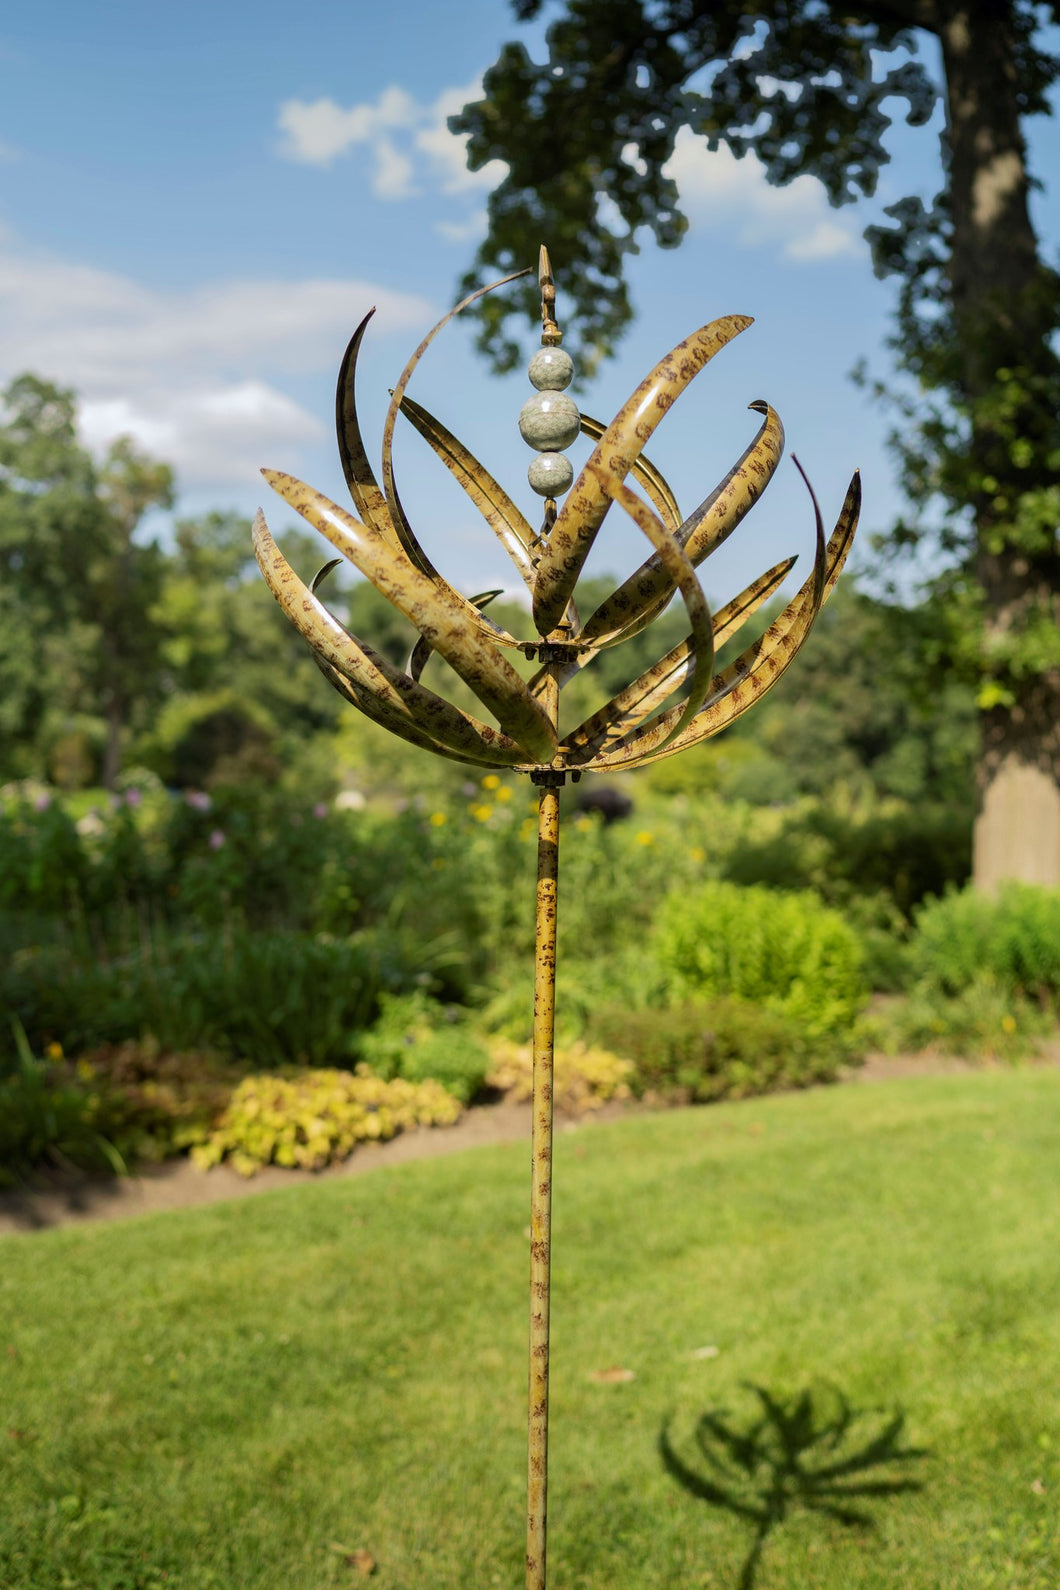 Garden Wind Spinner Spring Reeds | green | garden art | wind sculpture | Best Seller | Kinetic spinner